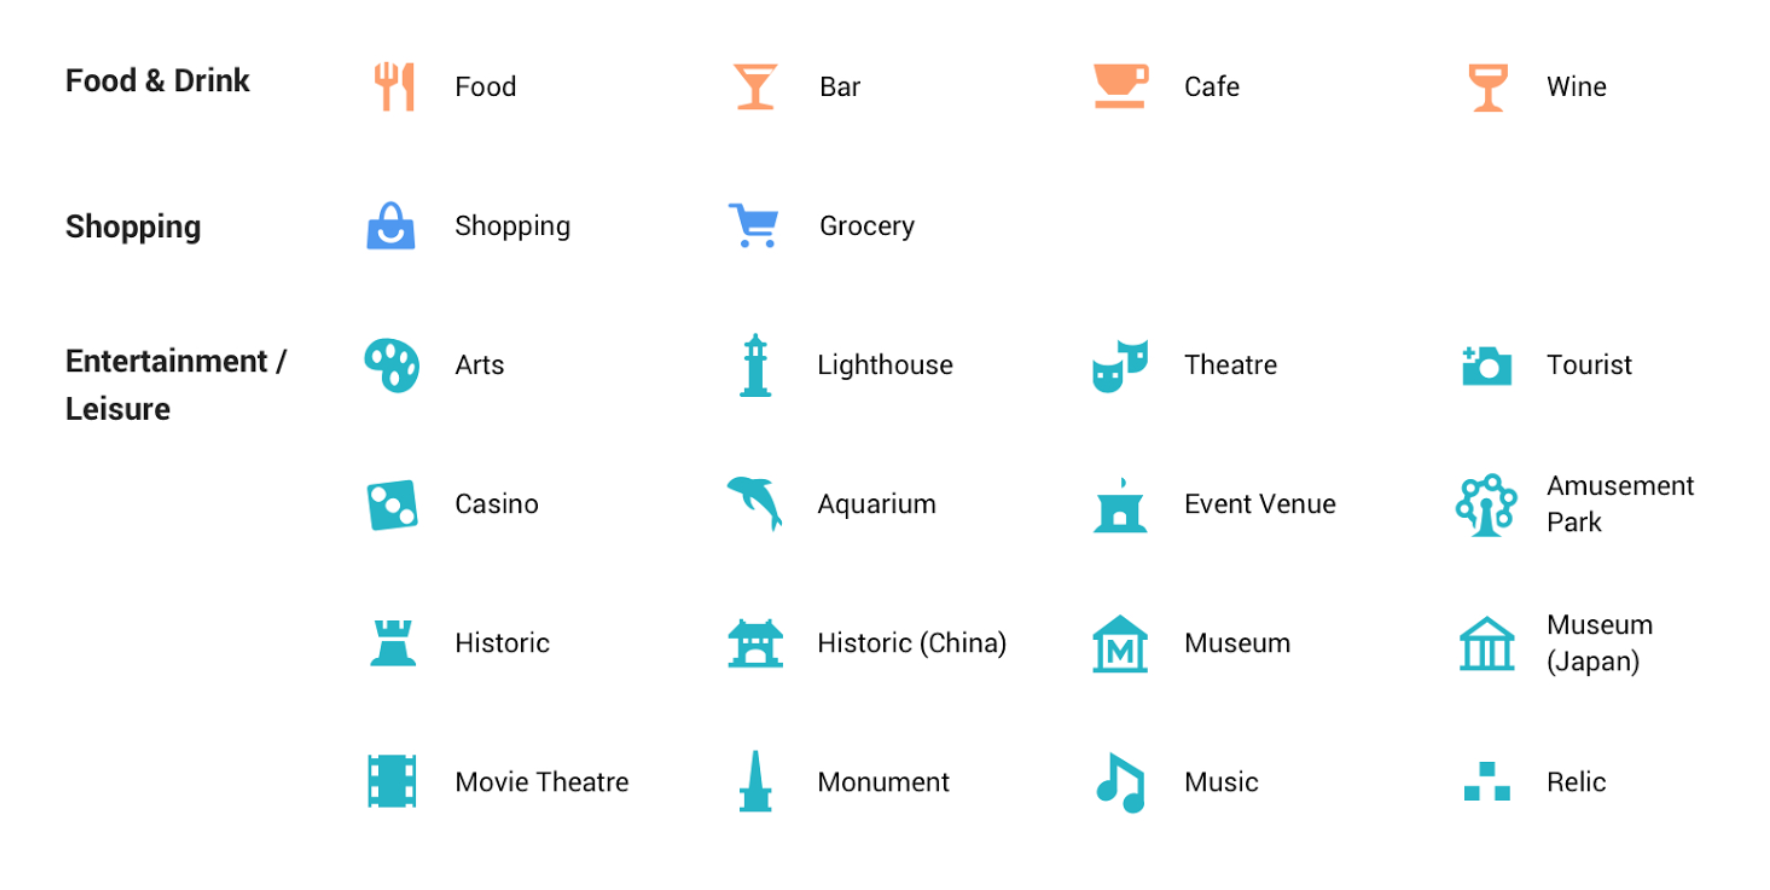 Google's new icons for points of interest (2017)